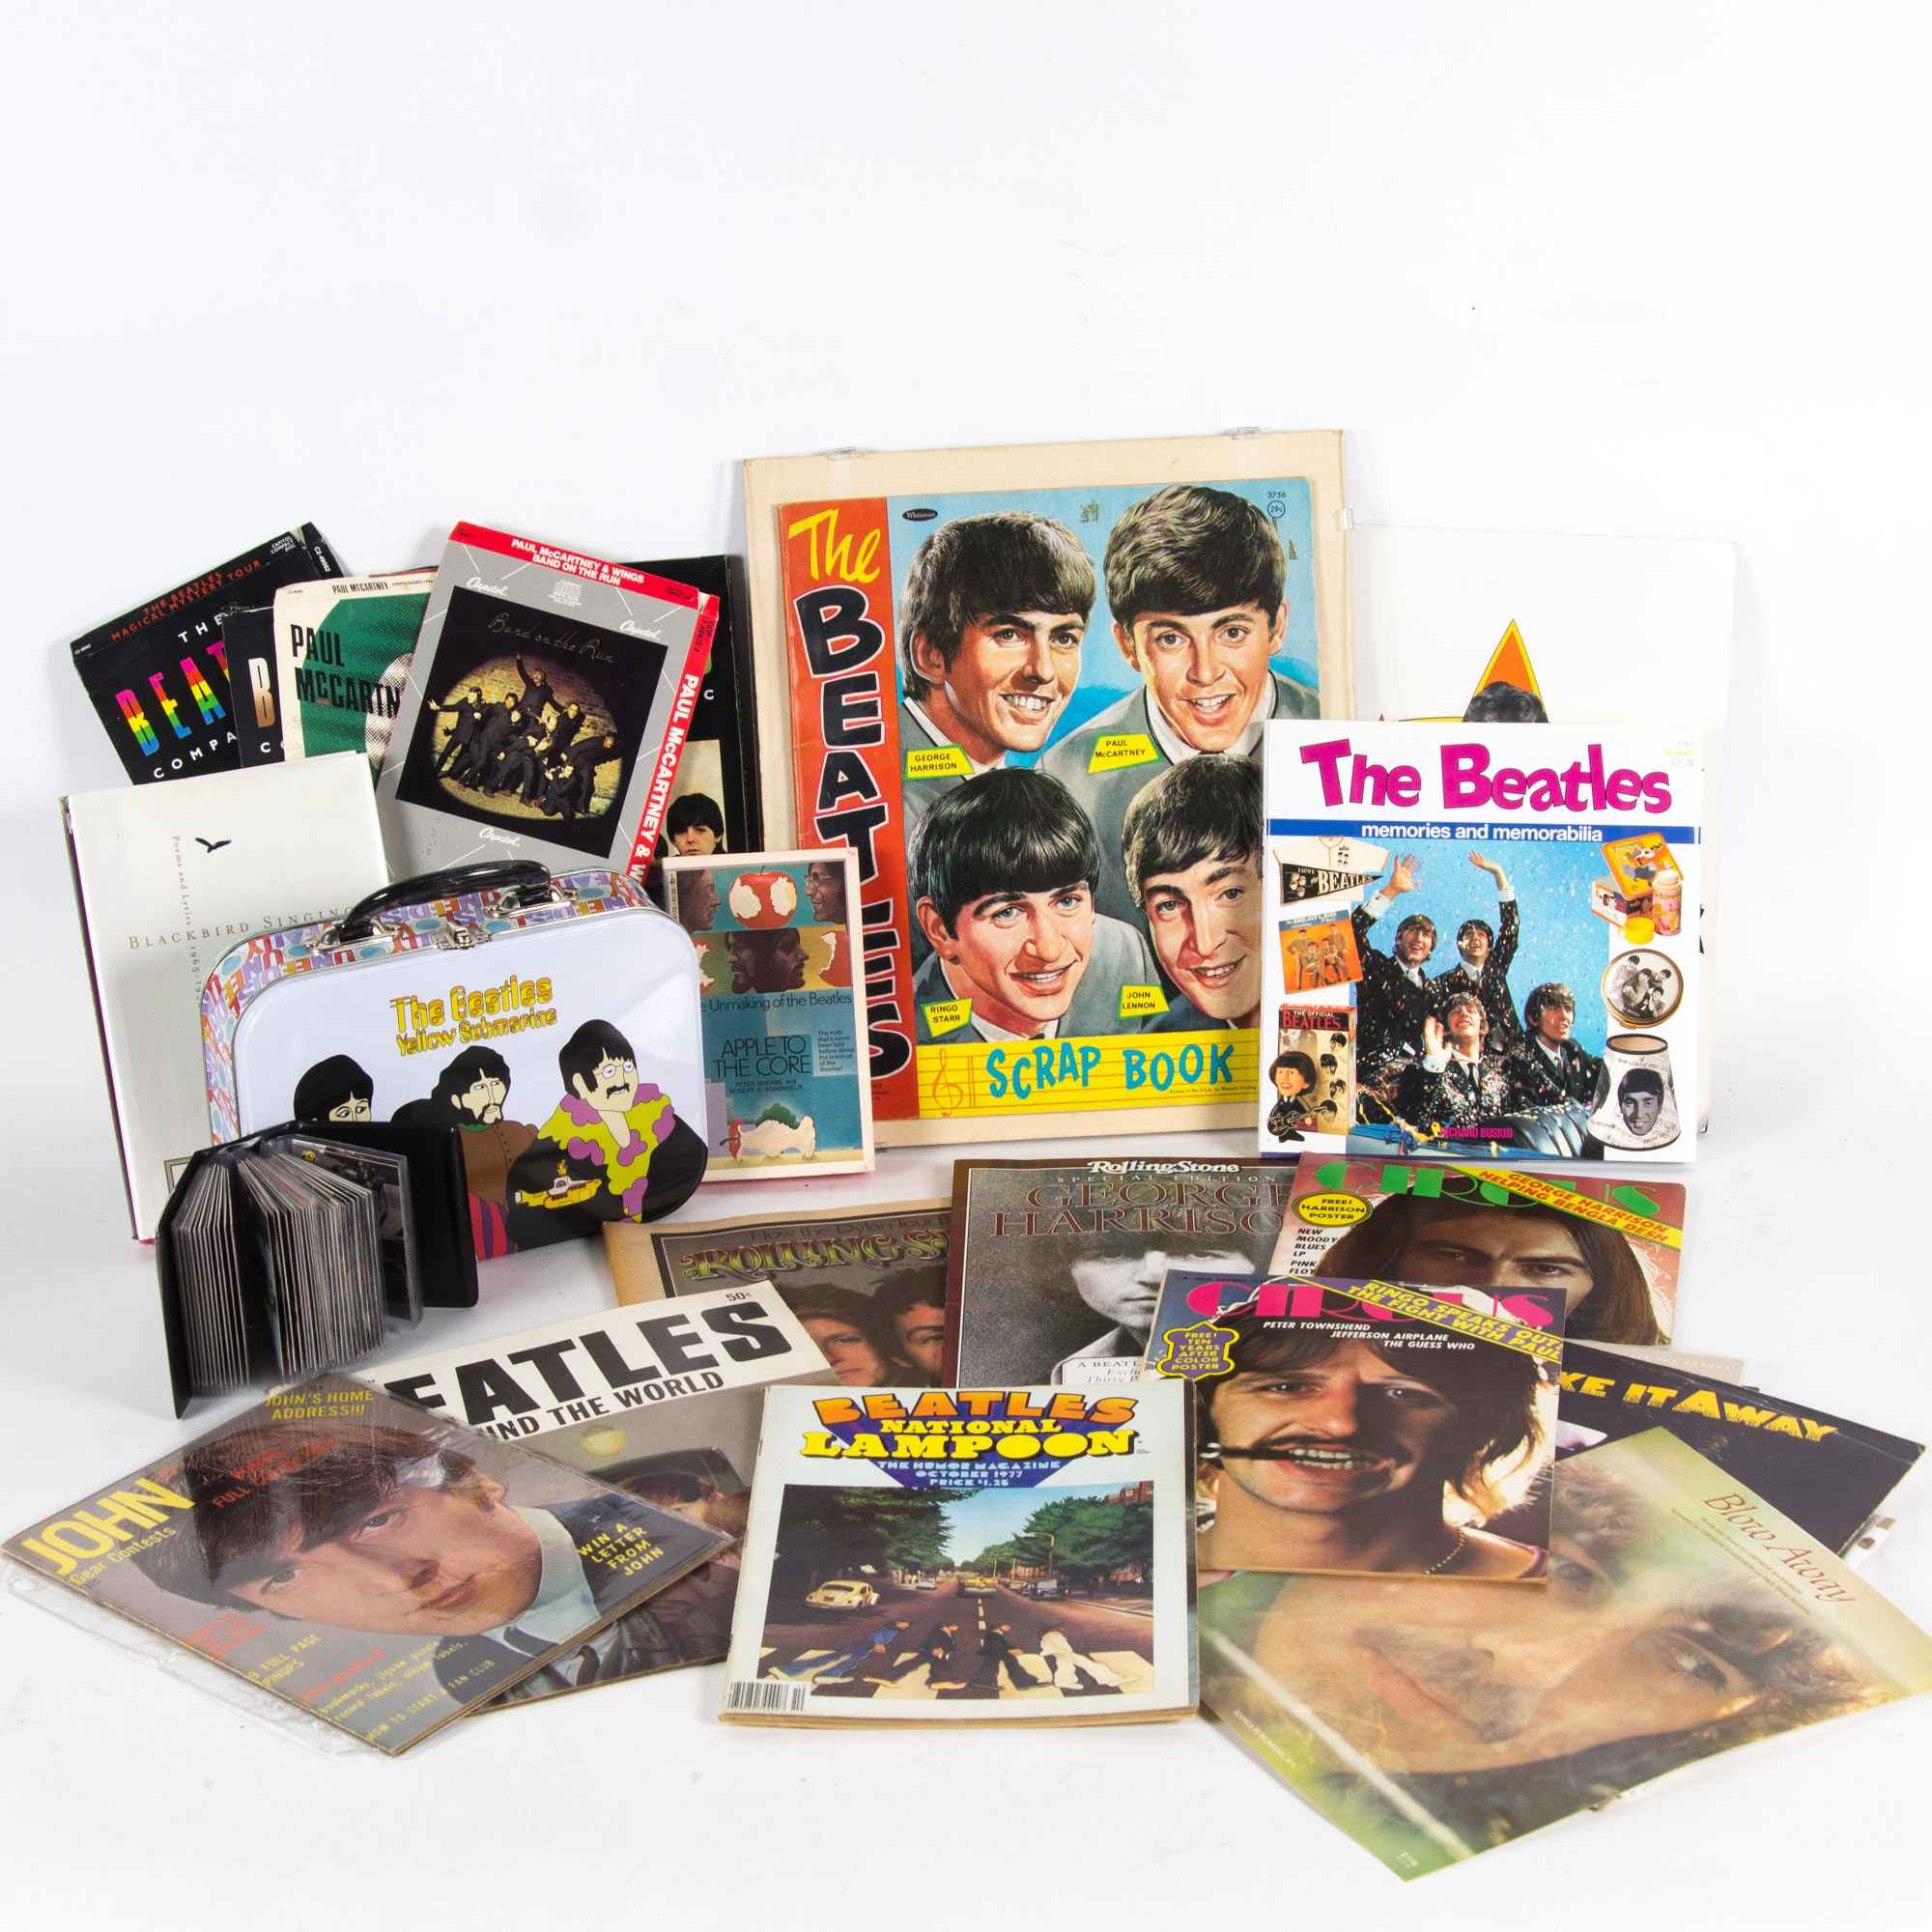 Assortment of Beatles Memorabilia and Ephemera